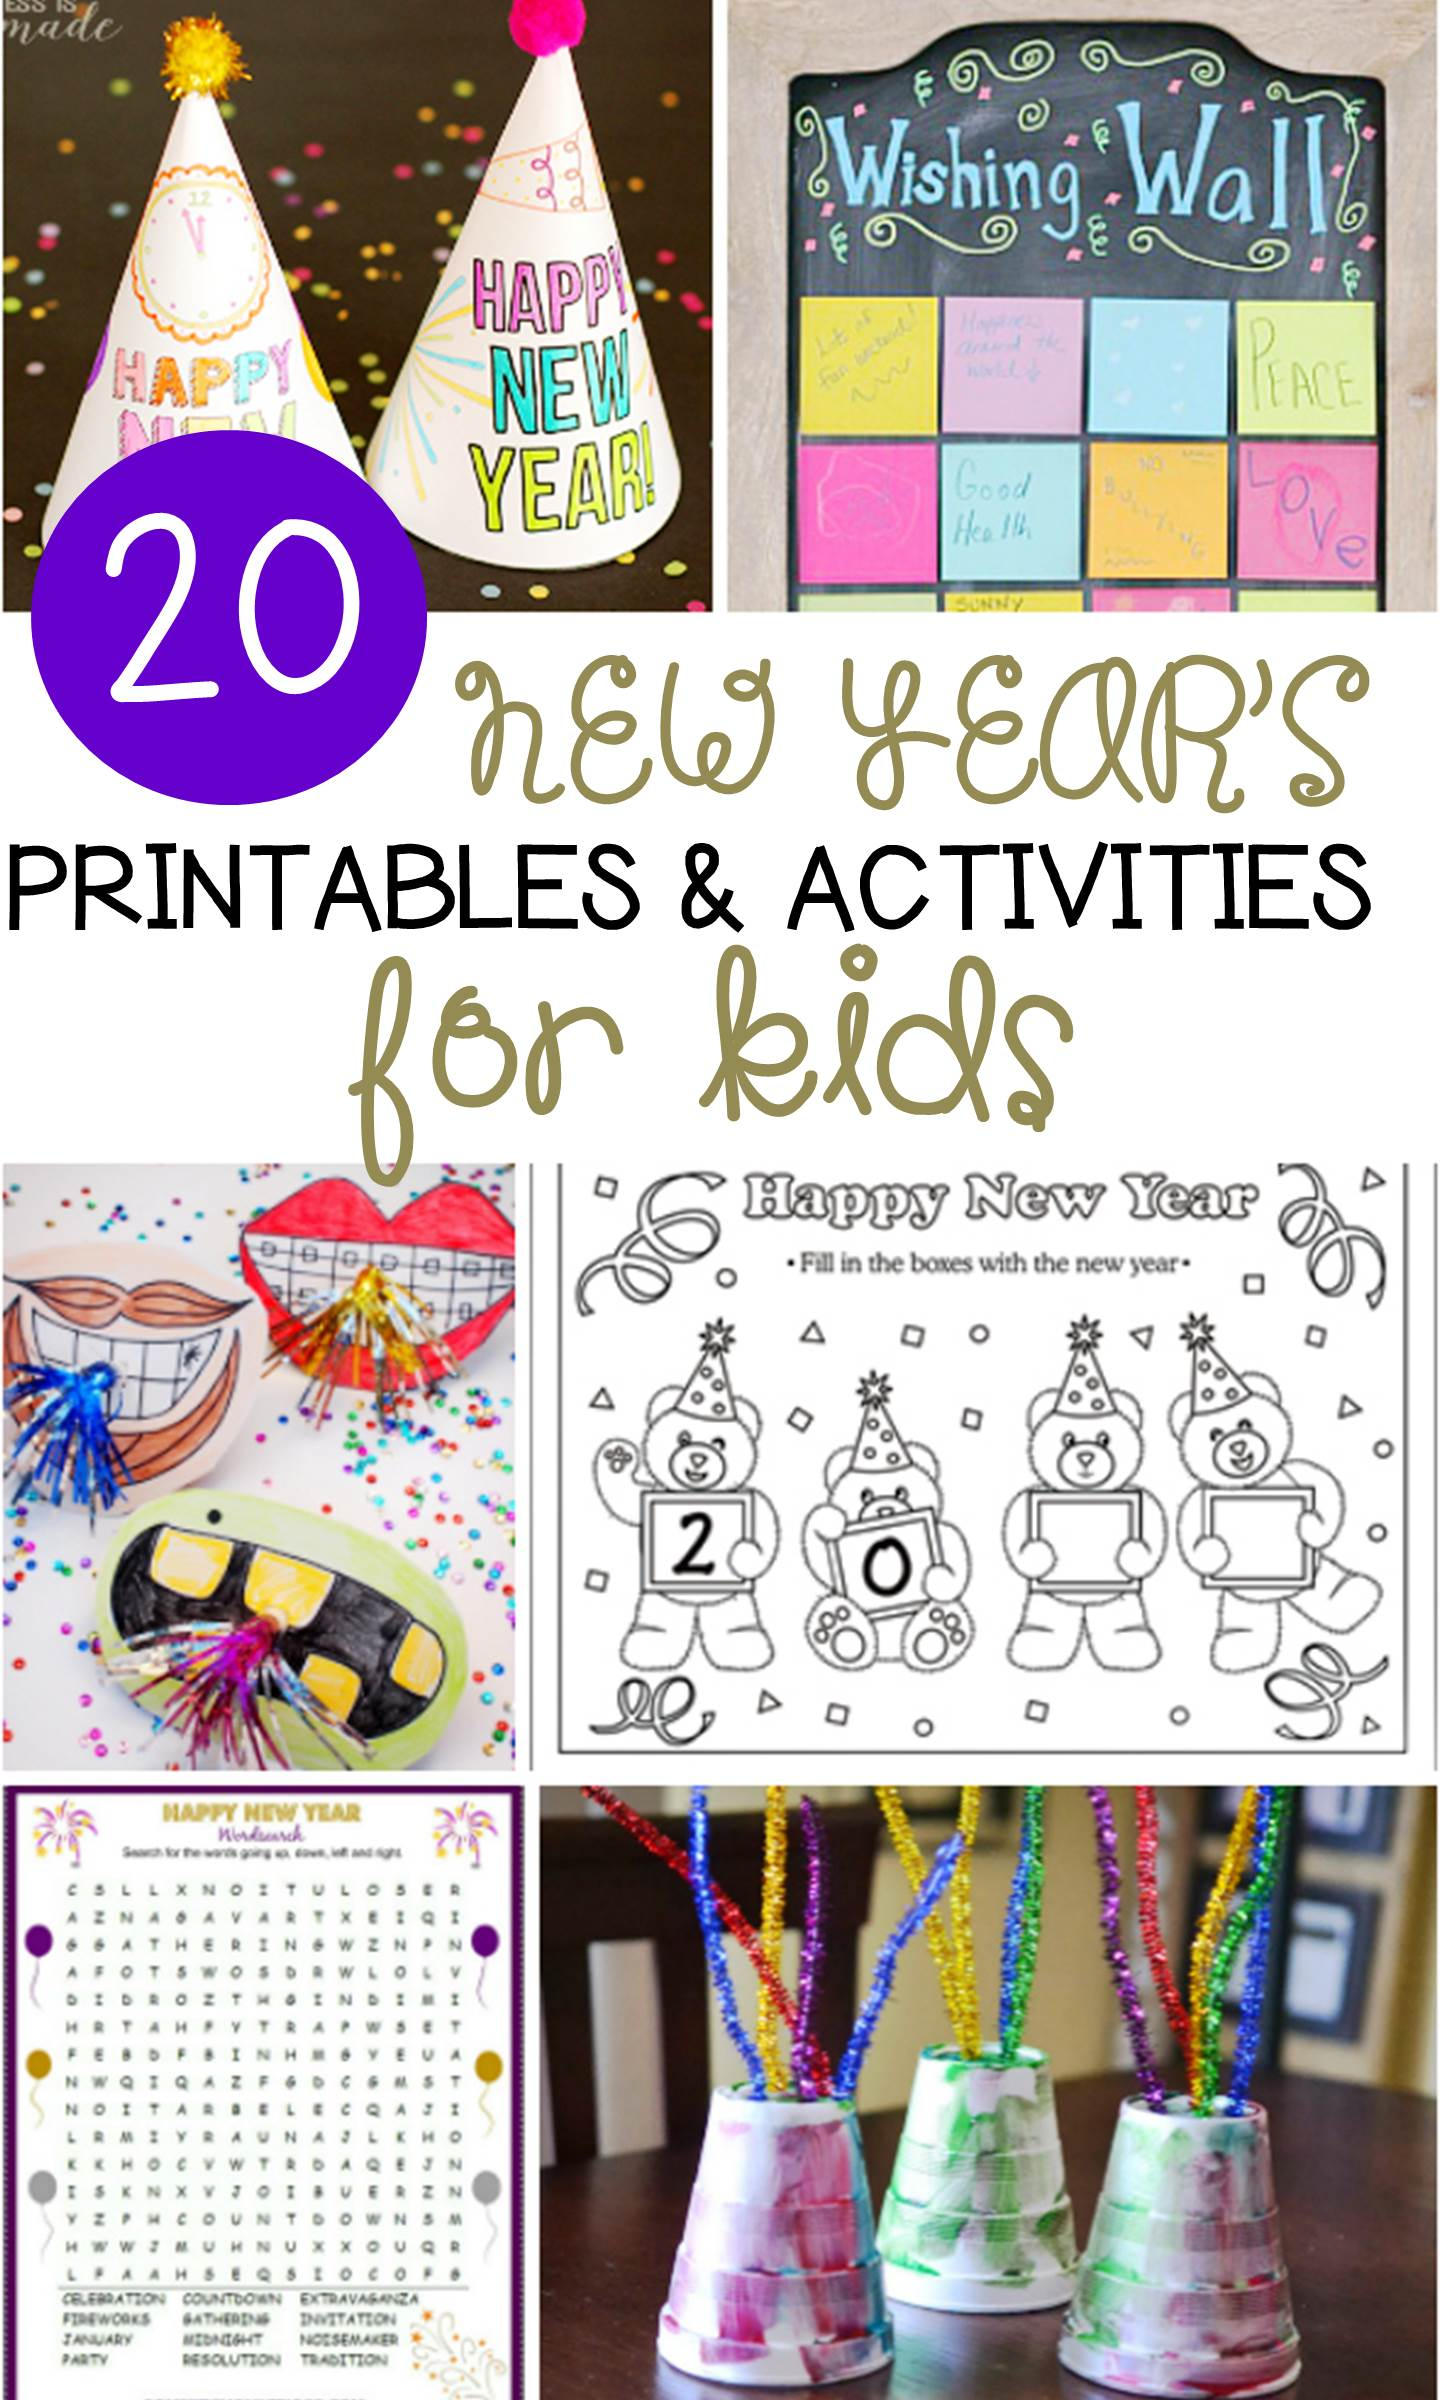 hight resolution of 20 New Year's Activities for Kids - fun for classroom or home!